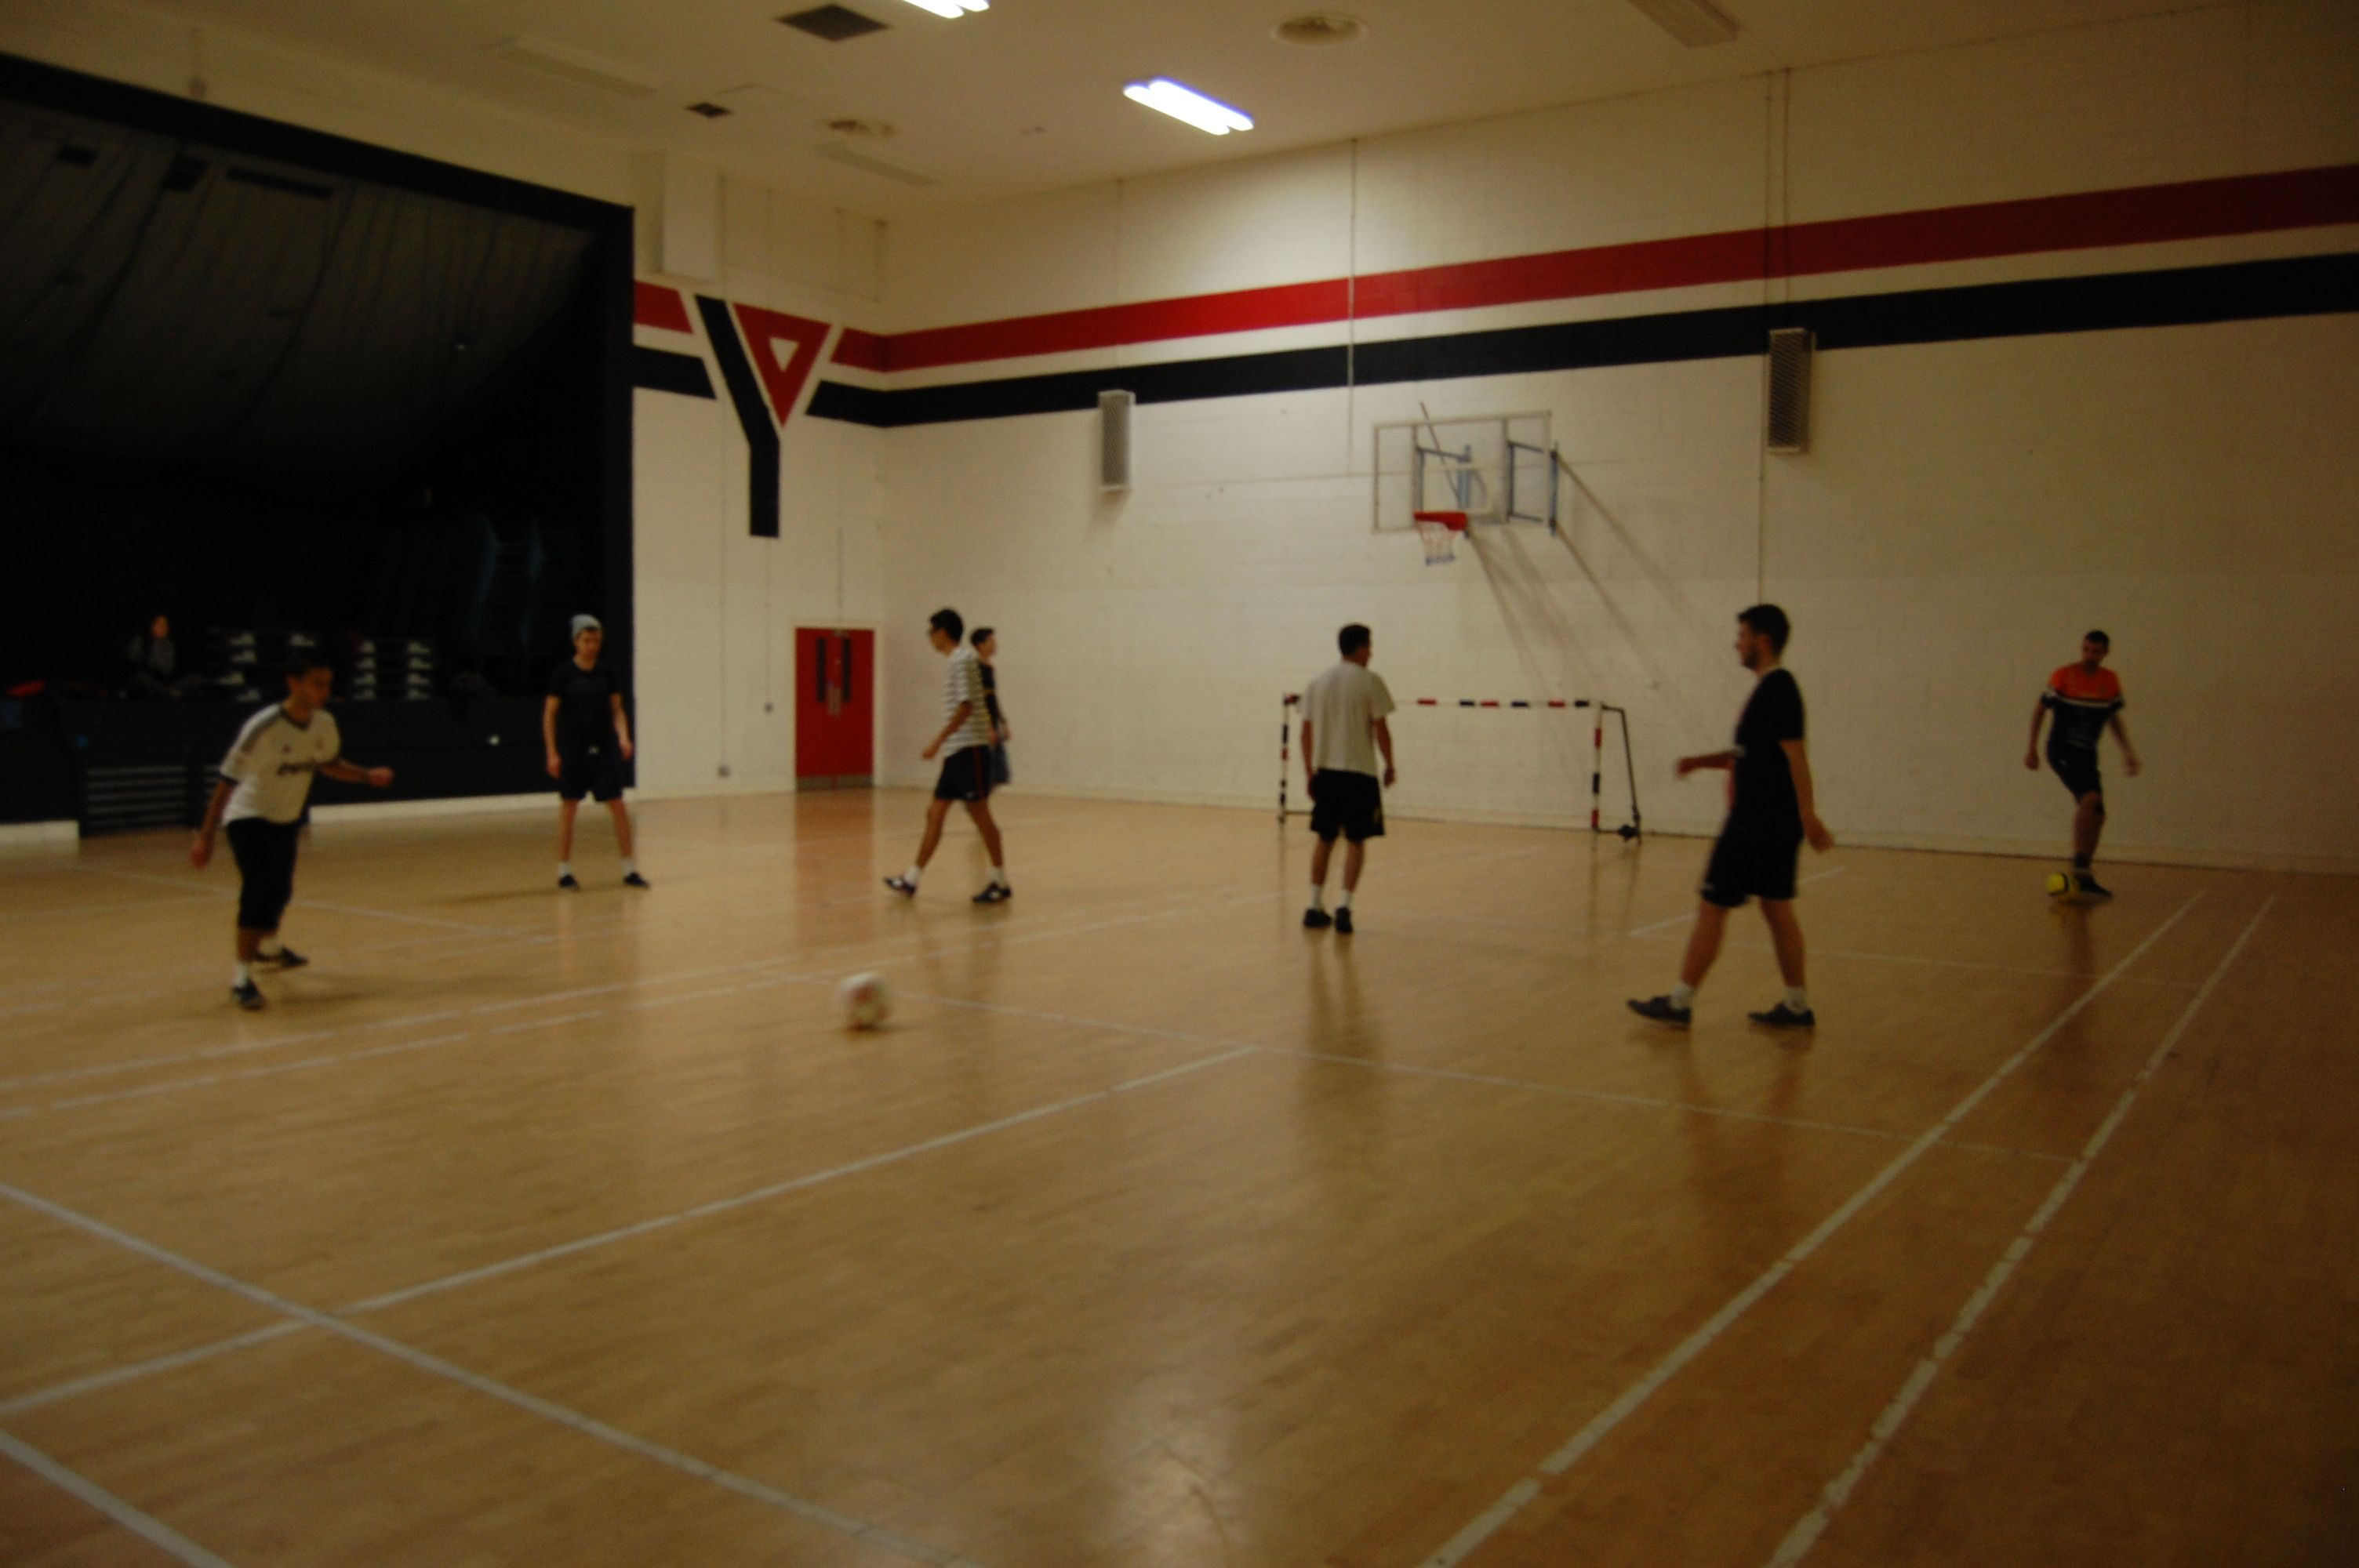 Indoor Football Soccer Friday Mornings 10am At Http Www Ymca Ie Ylifestyle Aungier St Gym Html Football Soccer